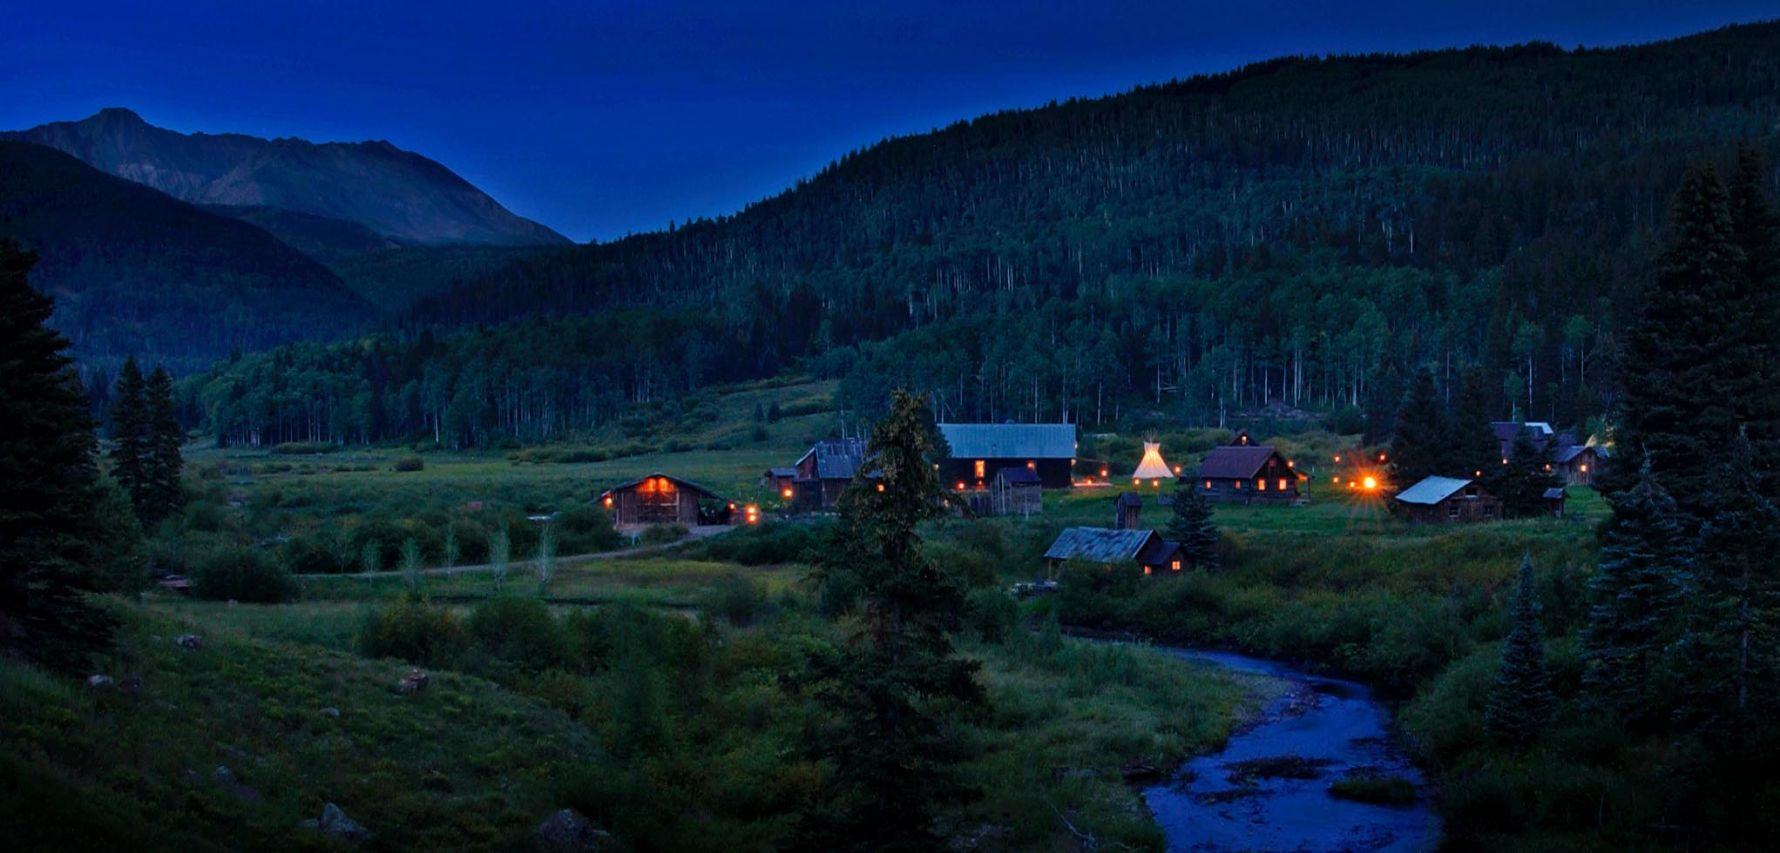 Dunton Hot Springs Resort - Dolores, Colorado